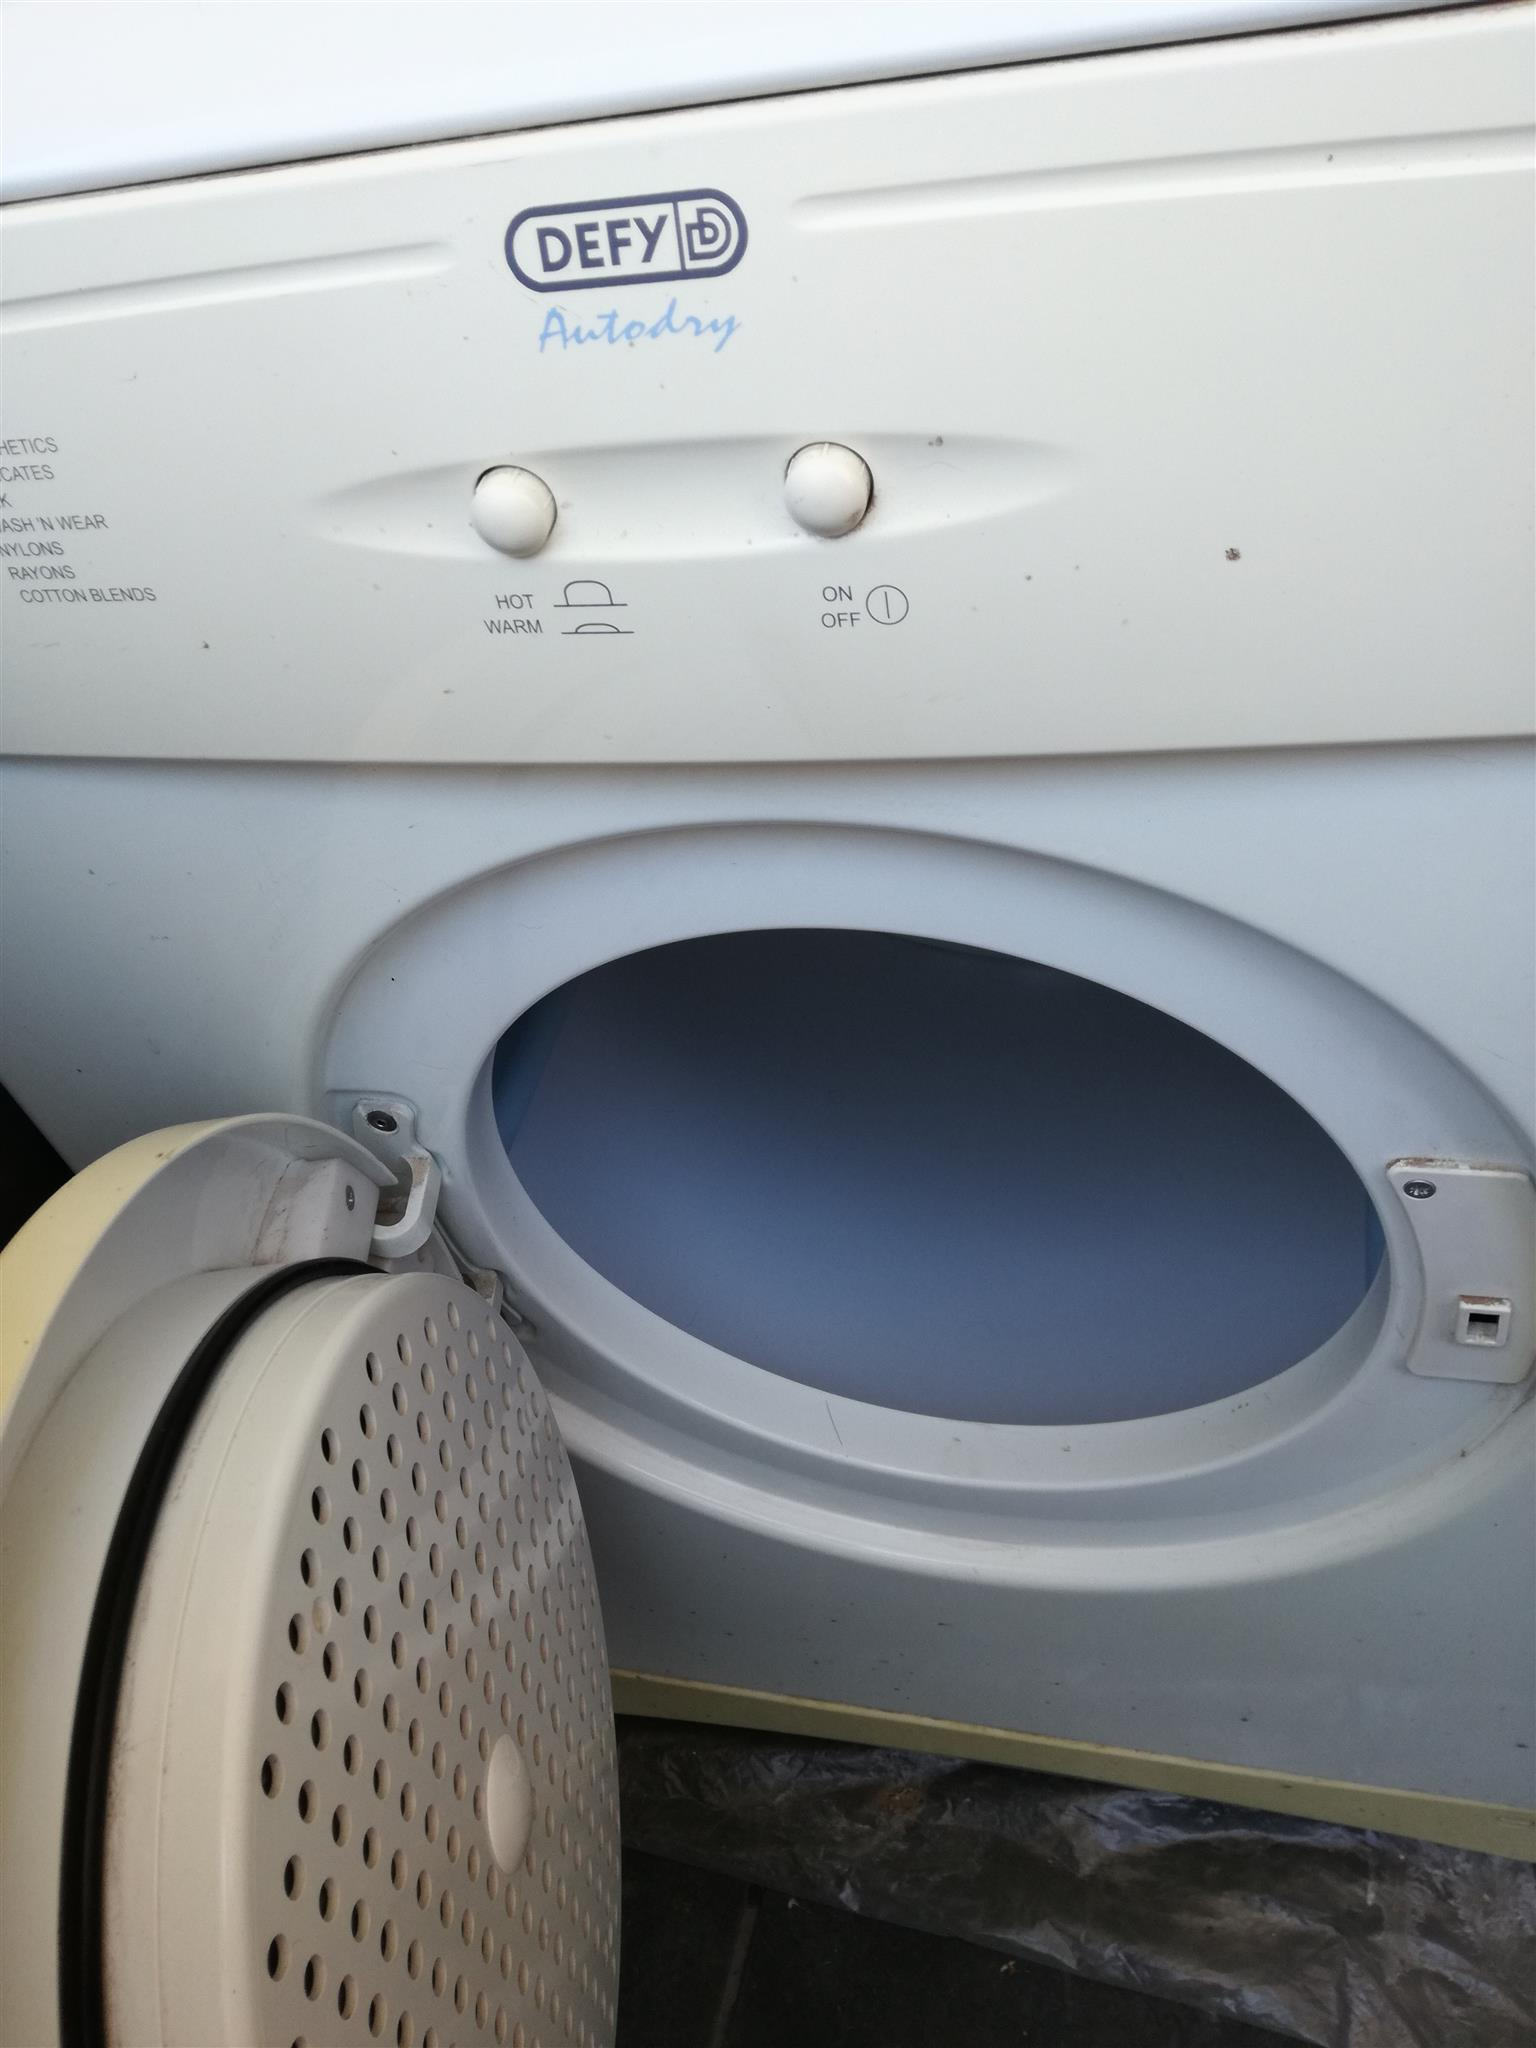 Double Bed and tumble dryer